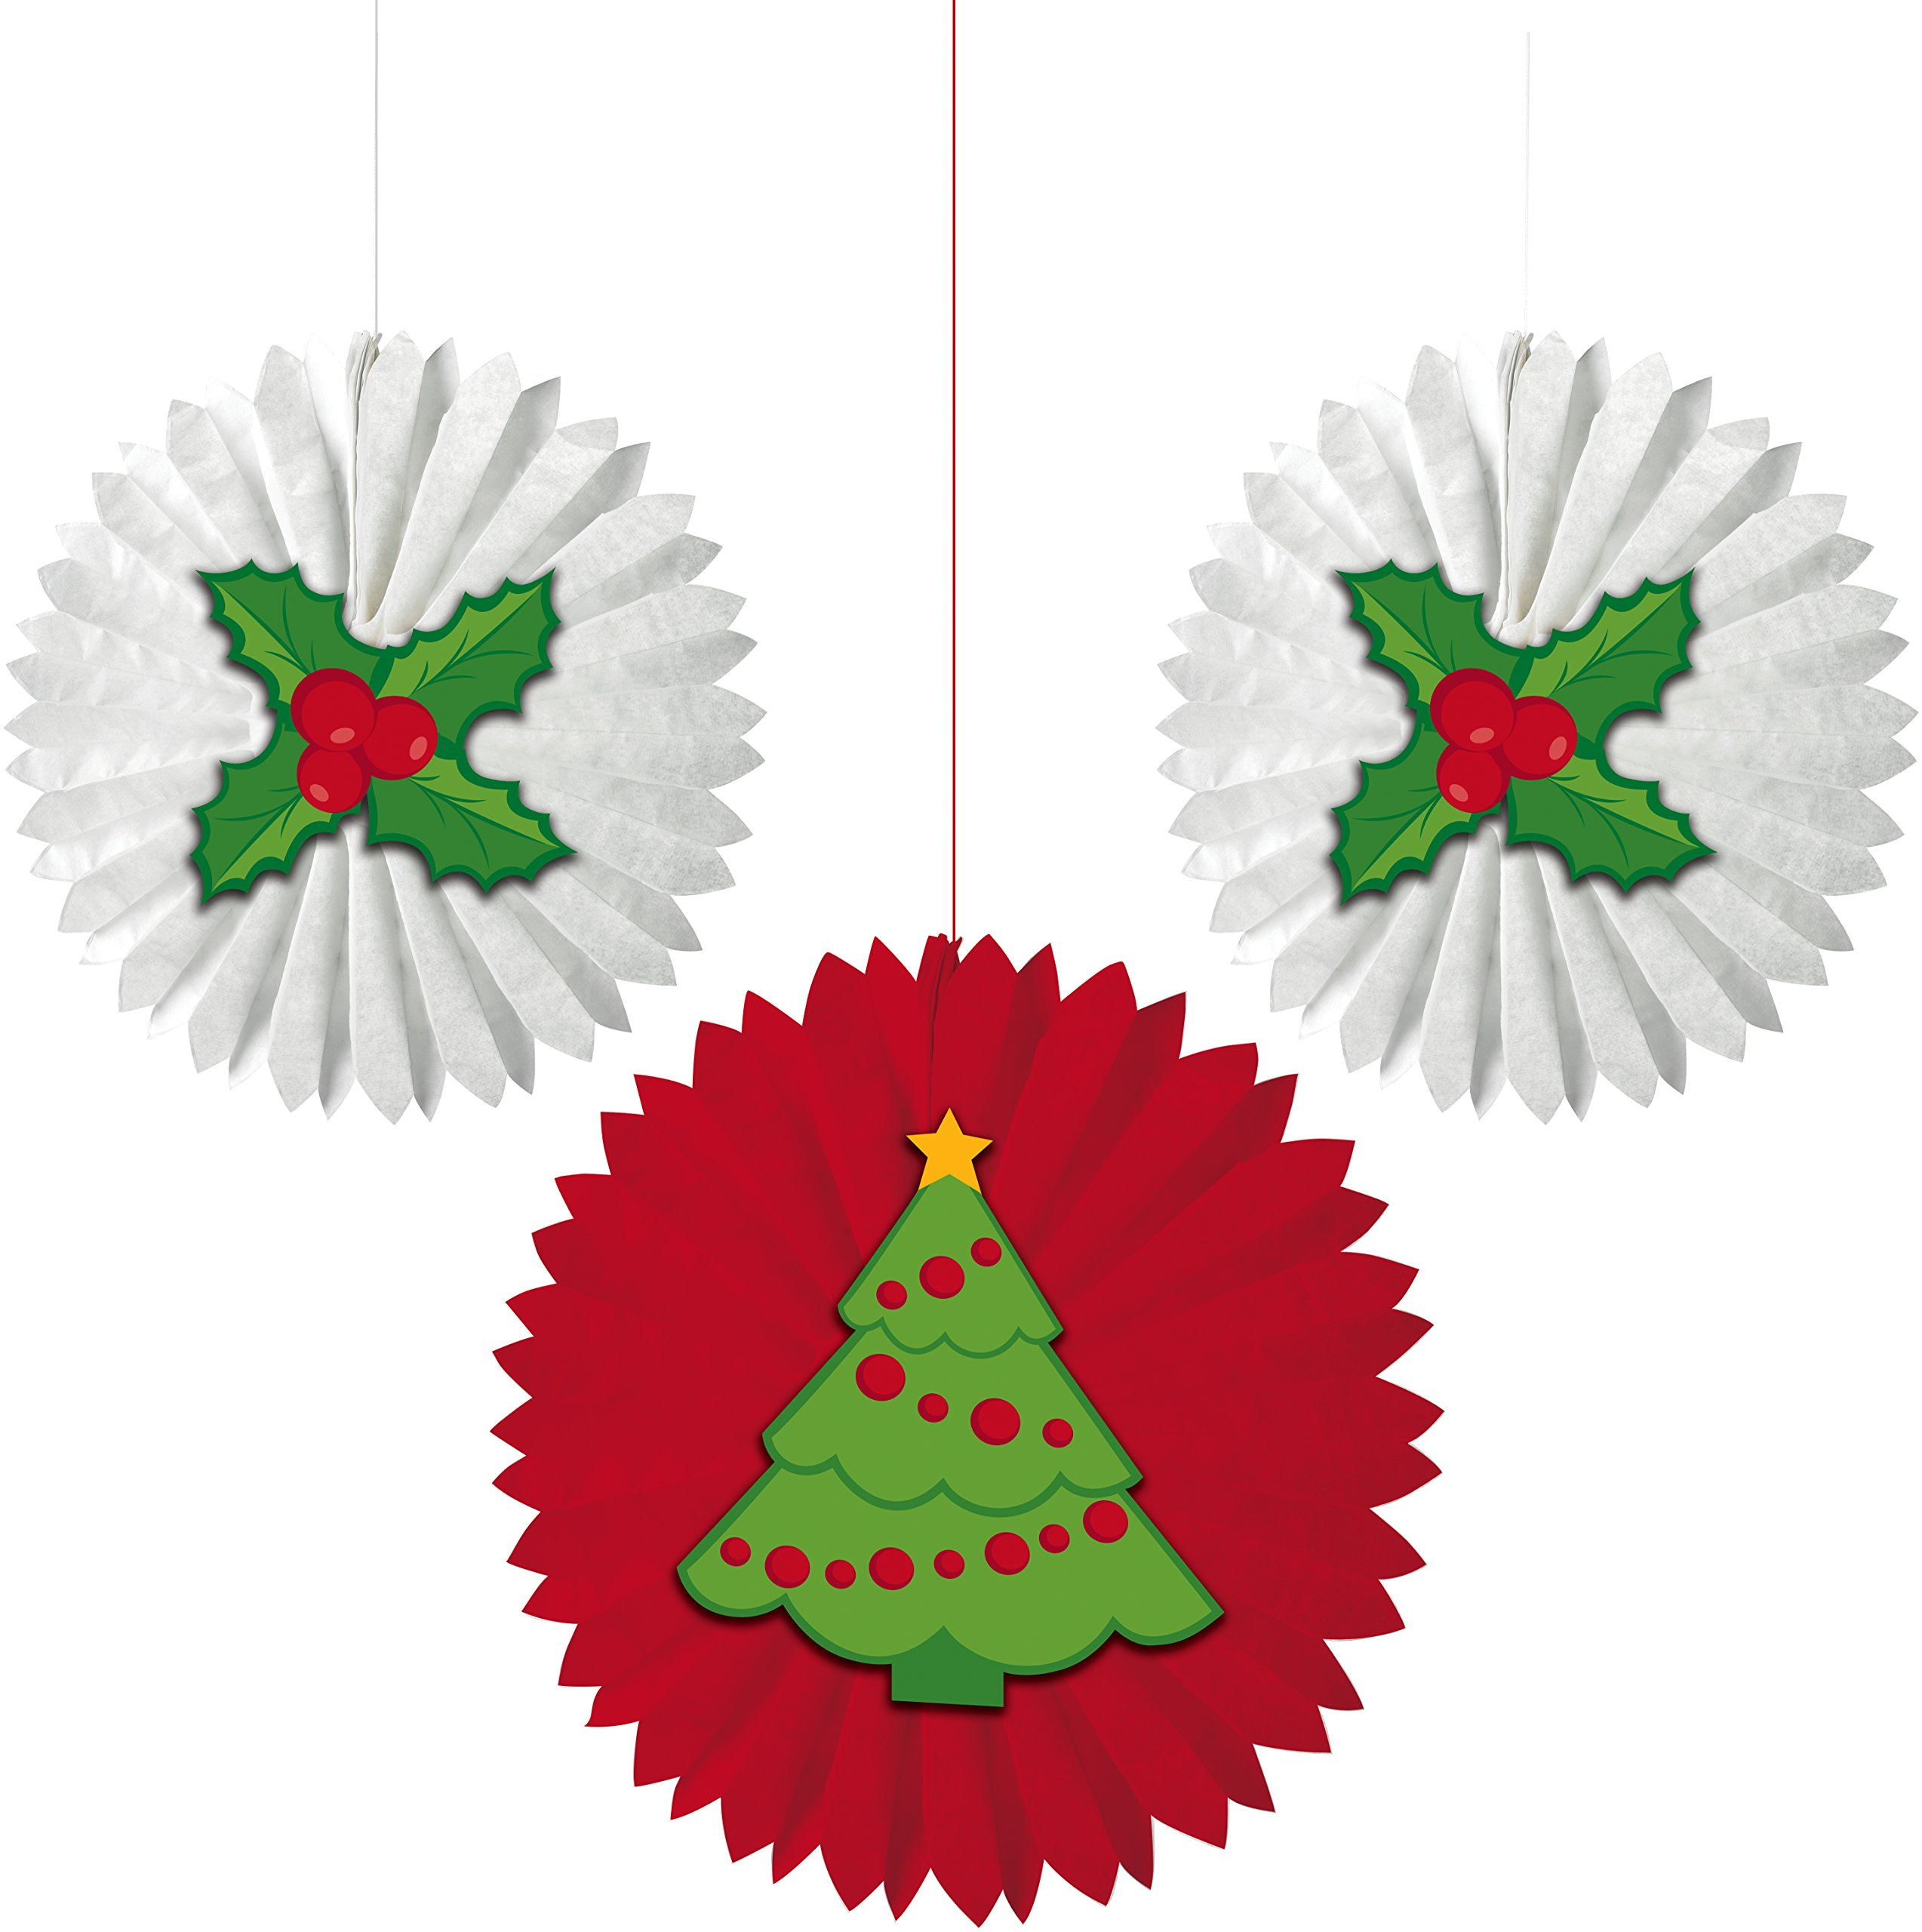 Creative Converting 3 Fans Christmas Tissue Fans with Attachments, Christmas Tree and Holly, Red/White/Green